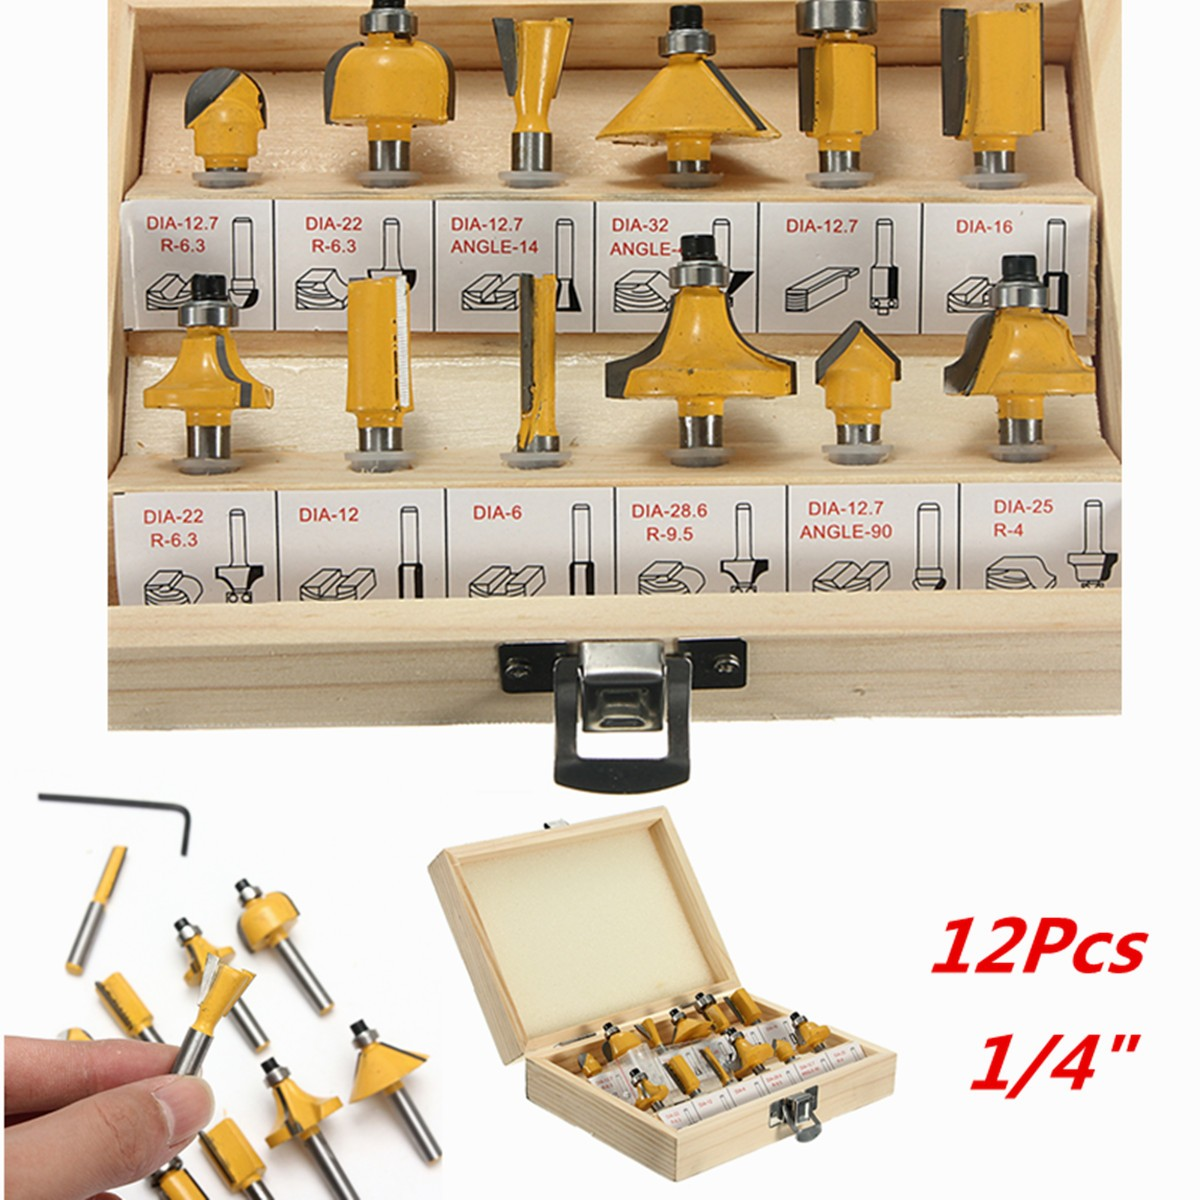 12PCS 1/4 Inch Wood Milling Cutter Shank Router Bit Set Trimming Machine Tool For Electric Trimmer Wood Work Cutting Kit